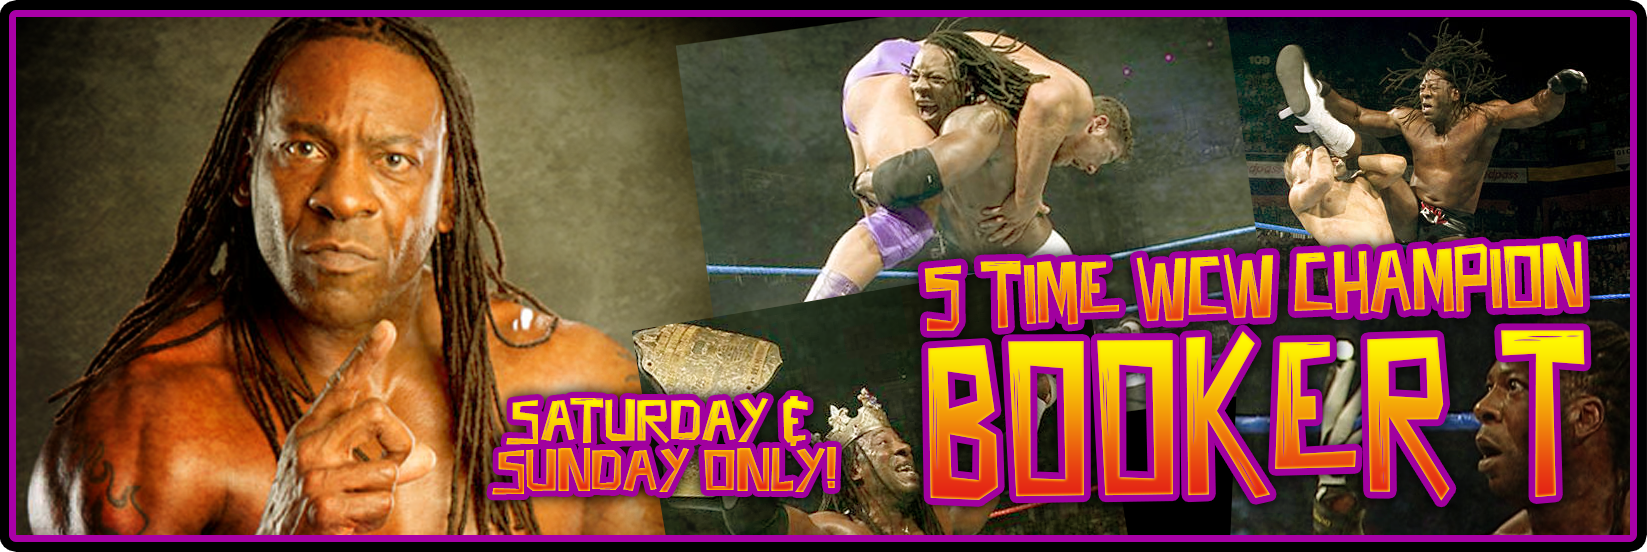 Booker-T-Banner.png